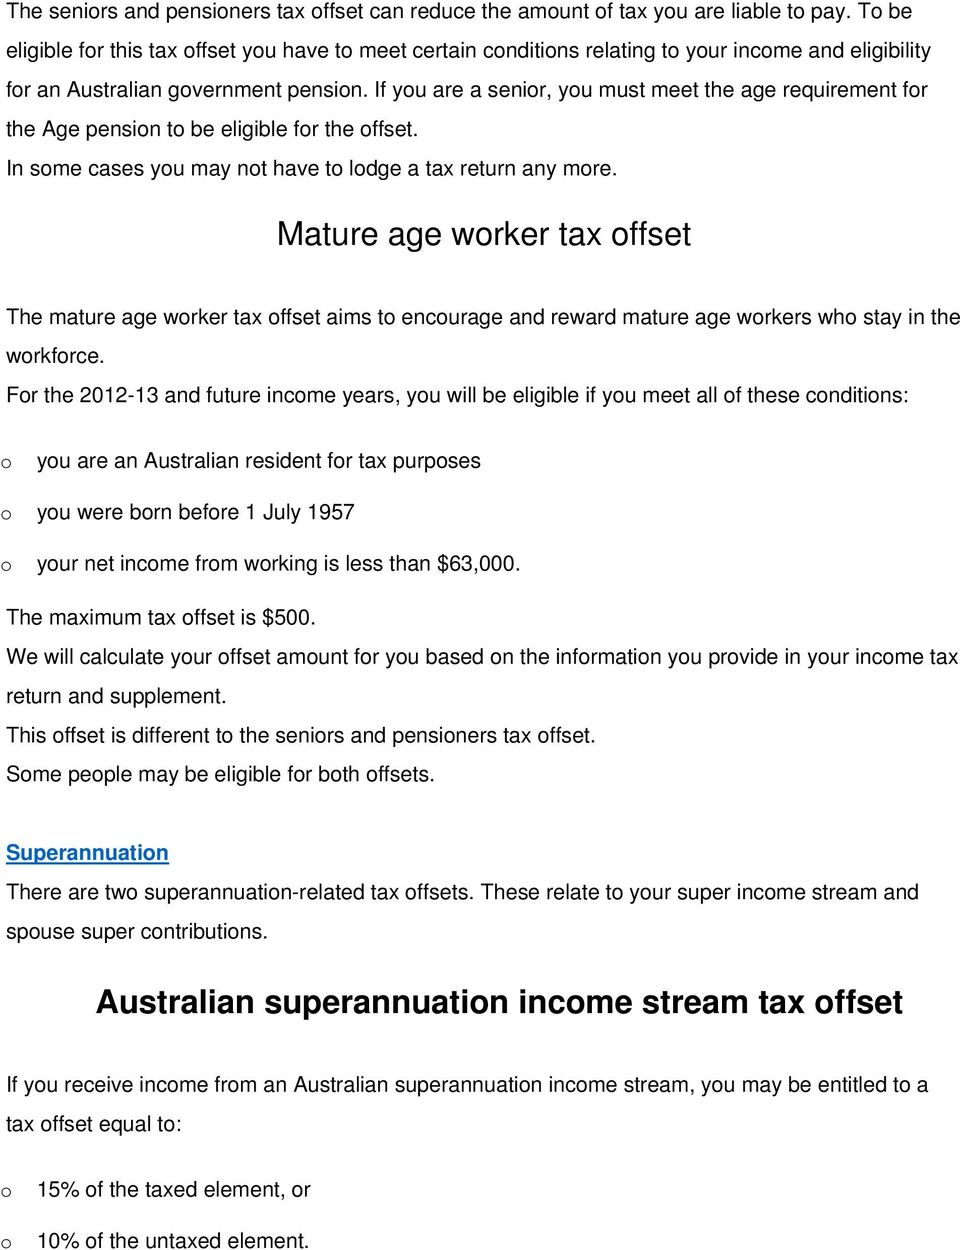 Mature age tax offset